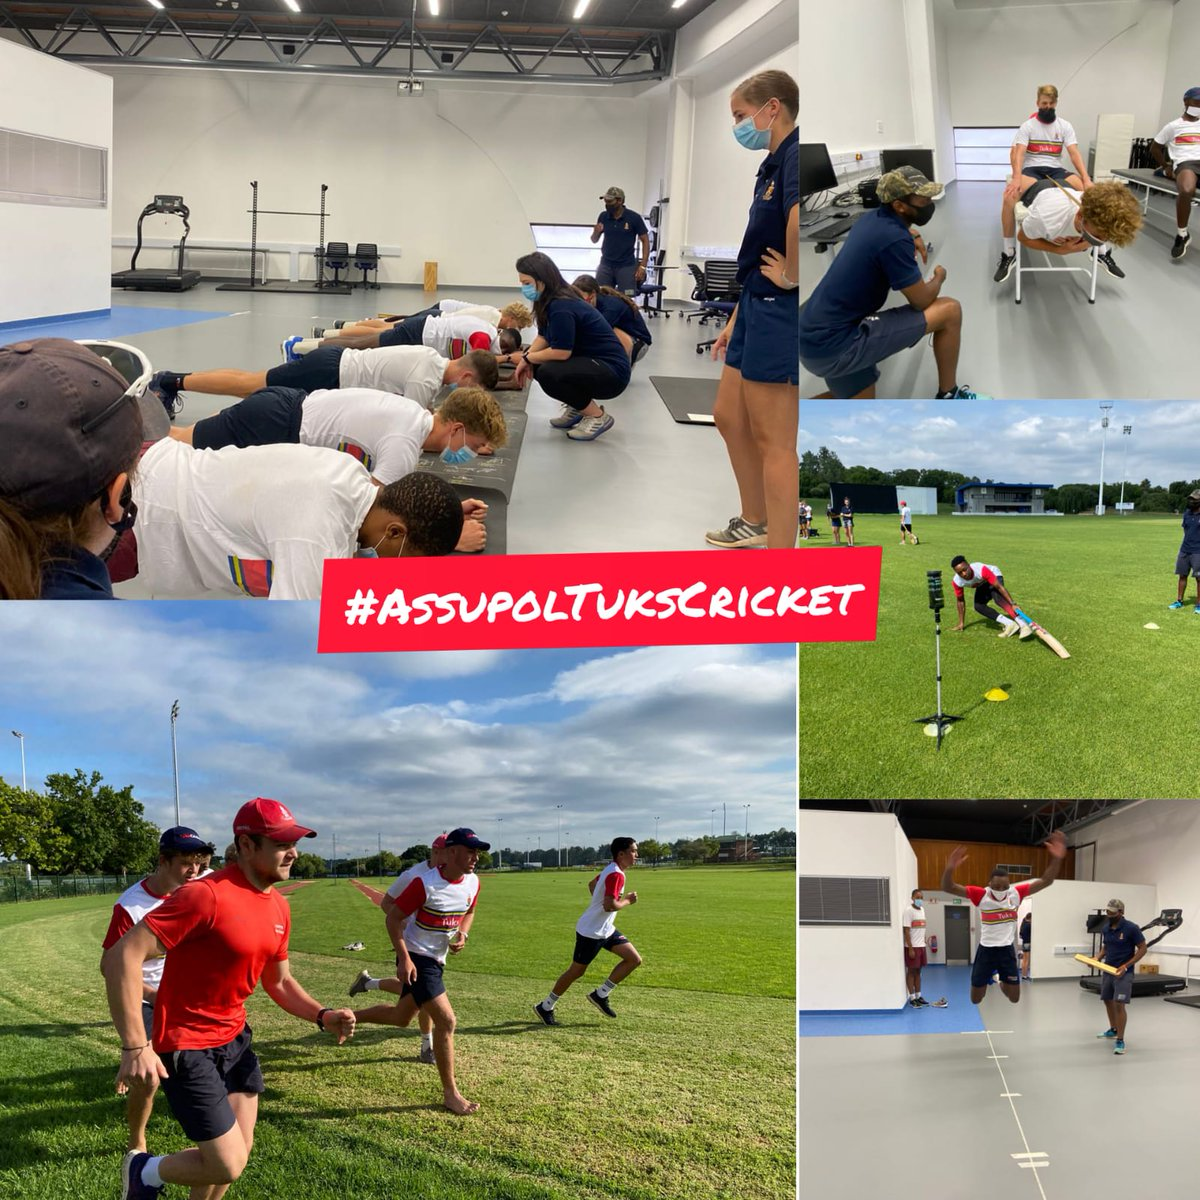 #HighPerformanceCentre: #ThankfulThursday  #AssupolTuksCricket has started the new year with fitness tests focusing on:  ☑️ Aerobic fitness ☑️ Co-ordination ☑️ Flexibility ☑️ Speed ☑️ Strength & power  All thanks to the SEMLI team based at the hpc, for conducting the tests 😀🏏